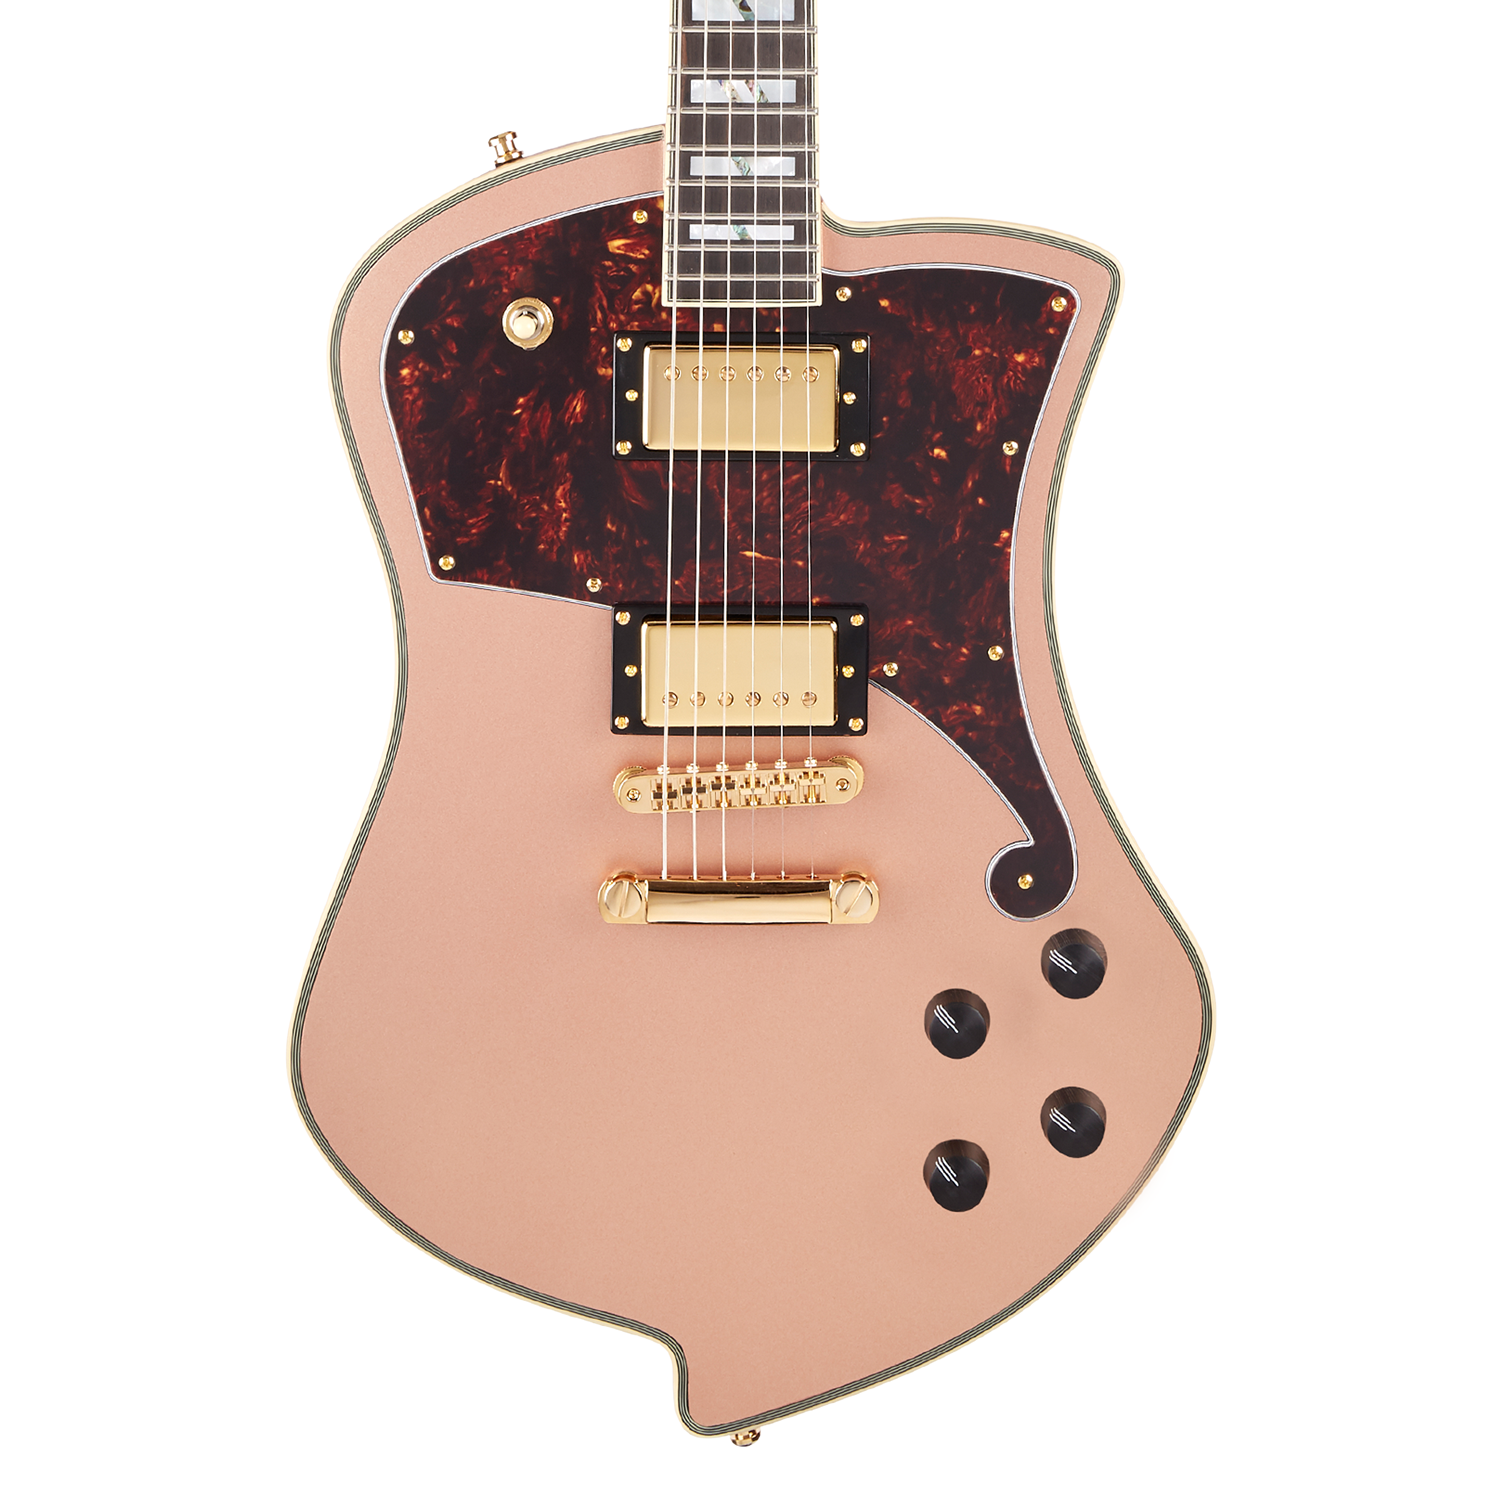 D'Angelico Deluxe Ludlow Limited Edition - Matte Rose Gold